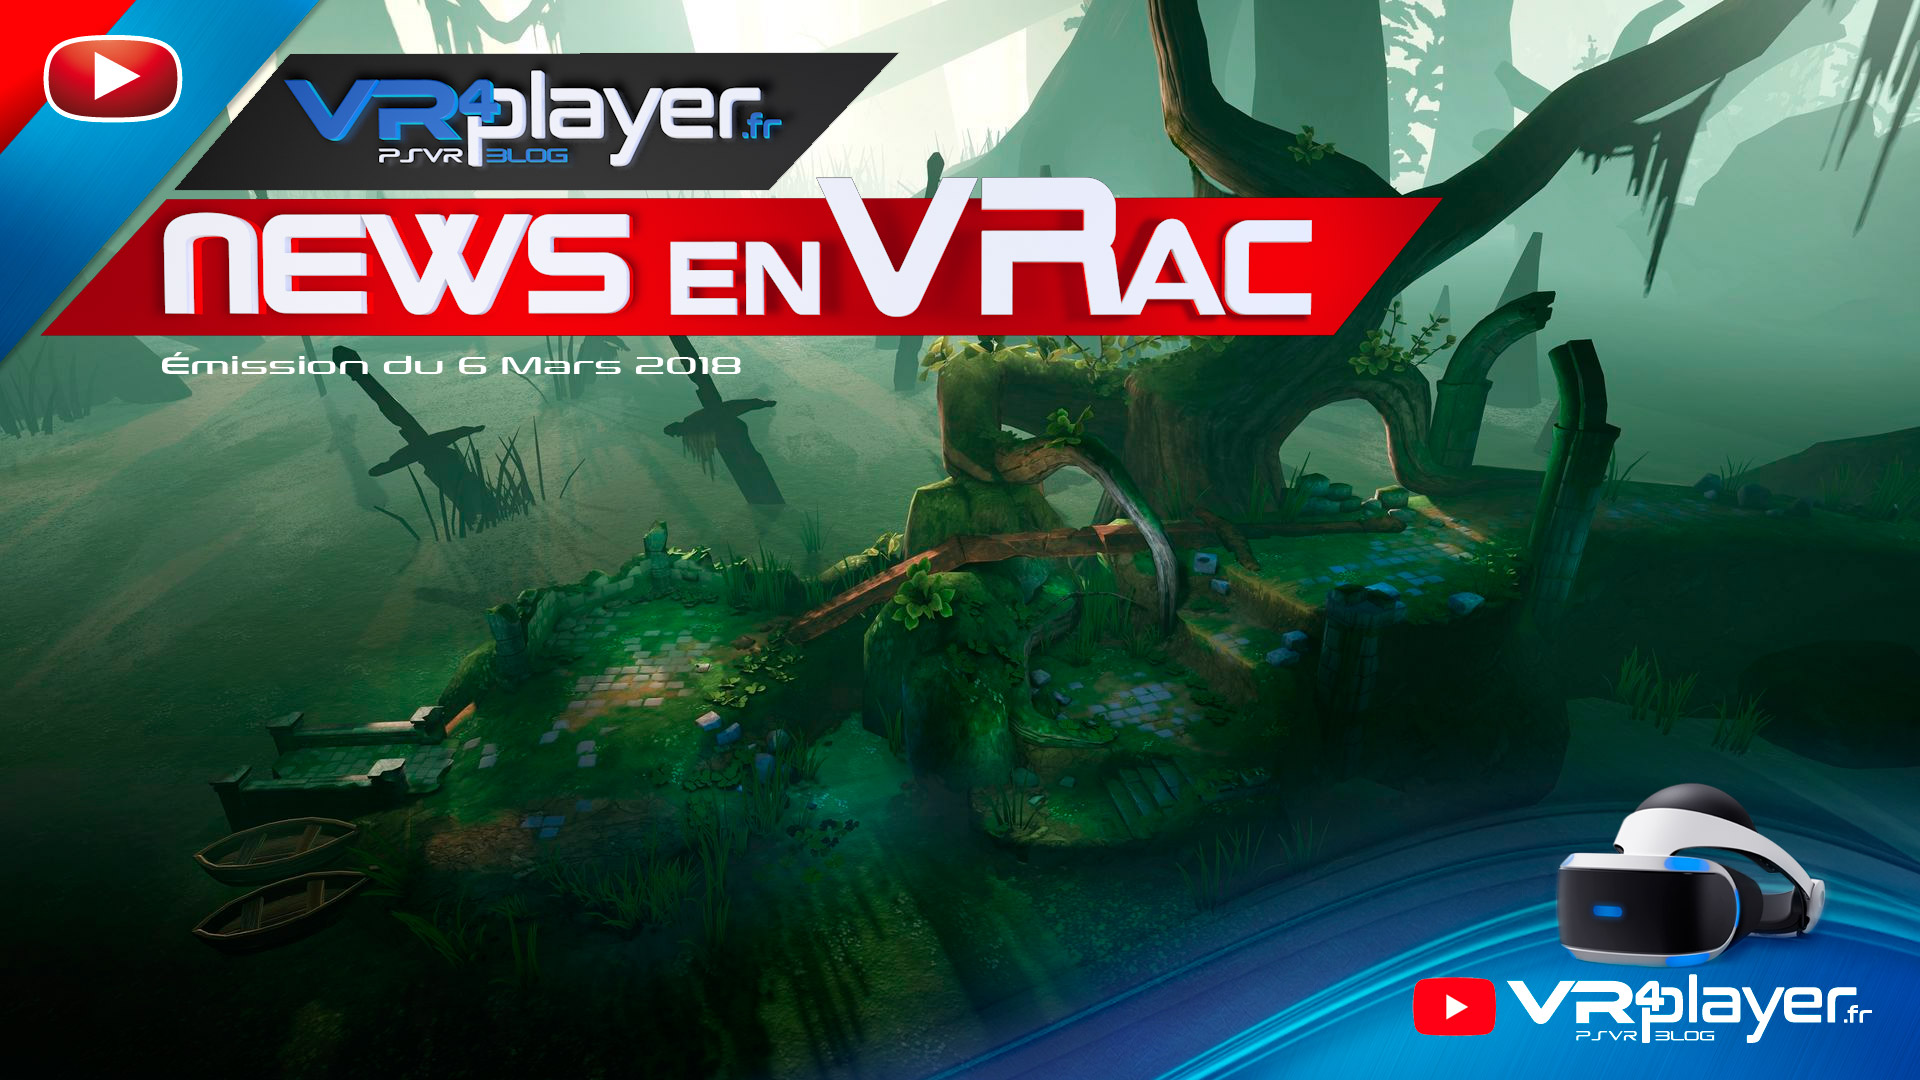 PlayStation VR : News en VRac, Breaking News VR4player.fr